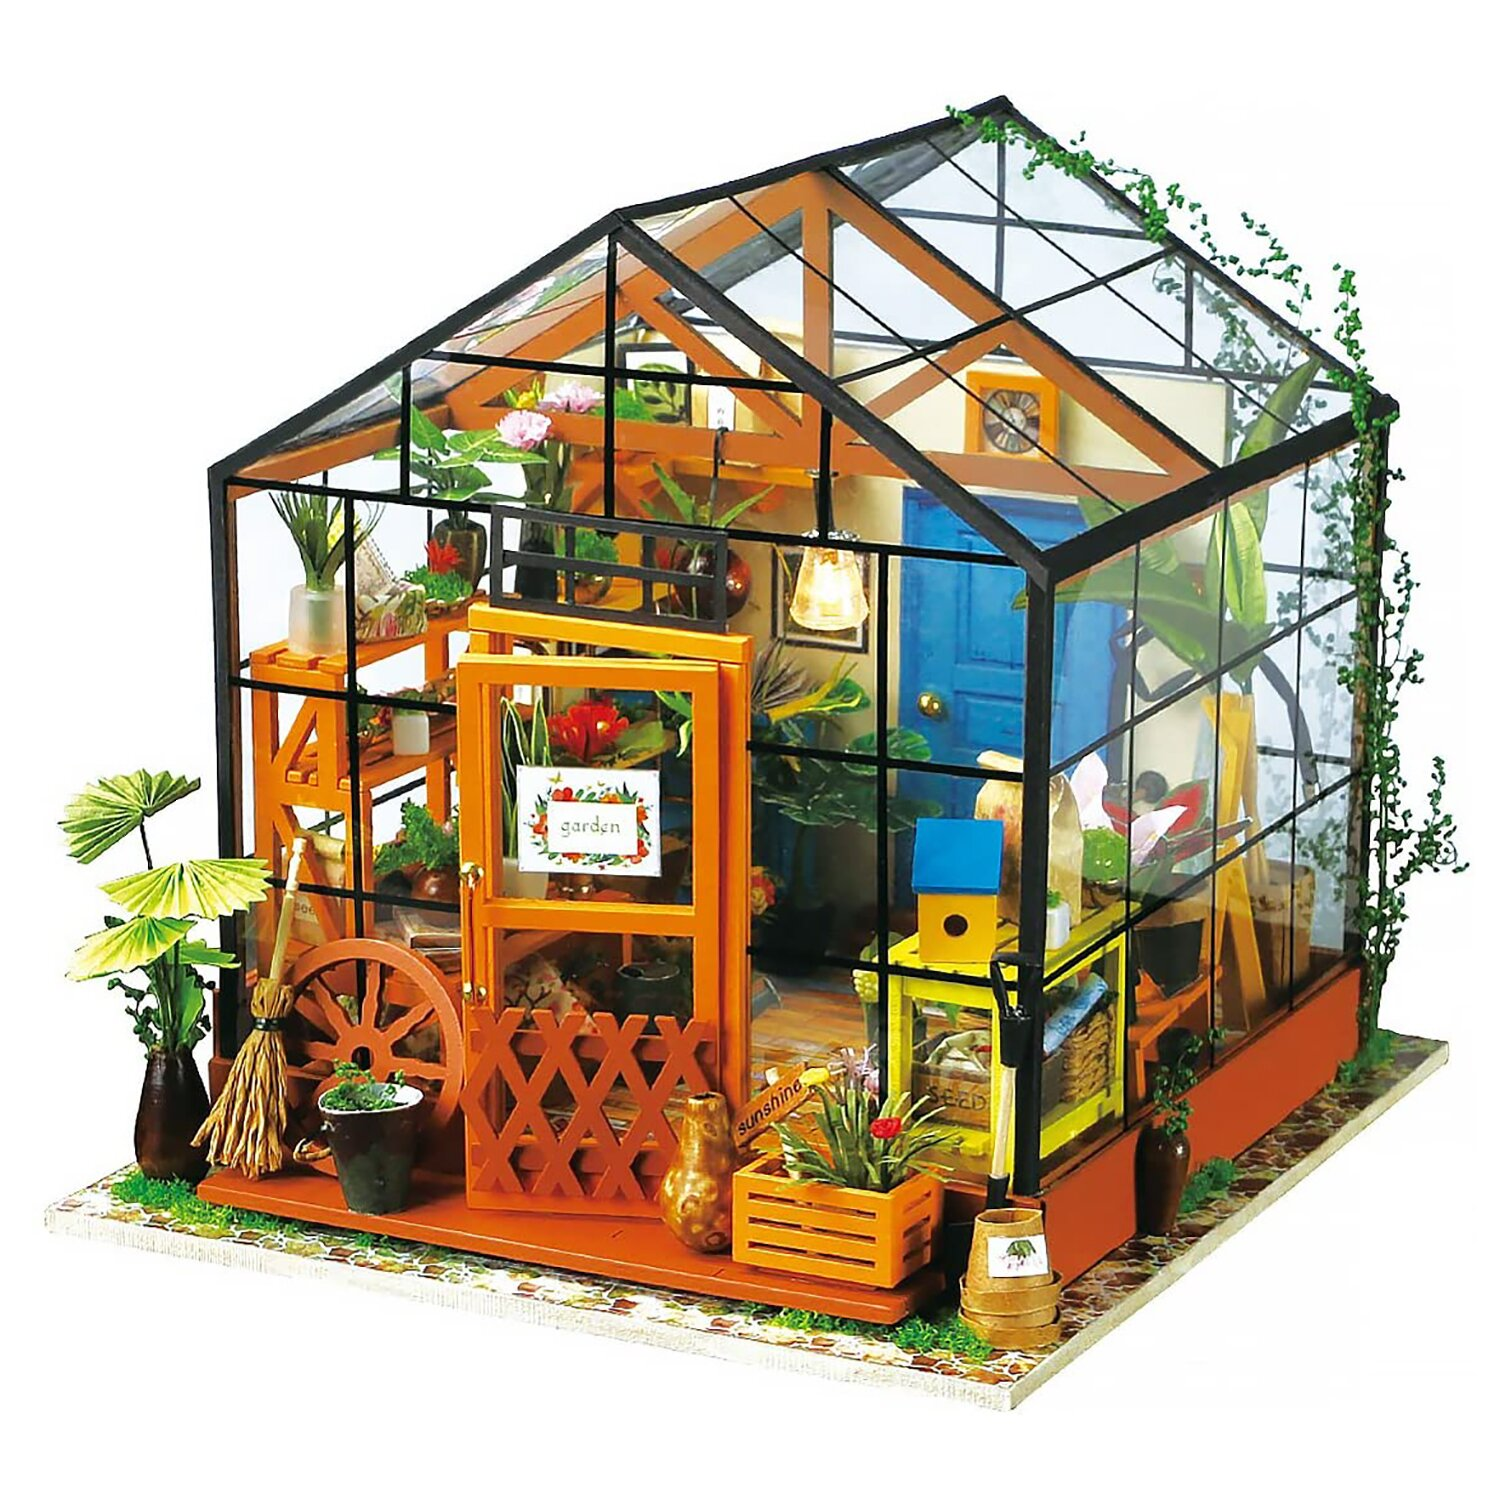 ROBOTIME DIY Dollhouse Wooden Miniature Furniture Kit Mini Green House